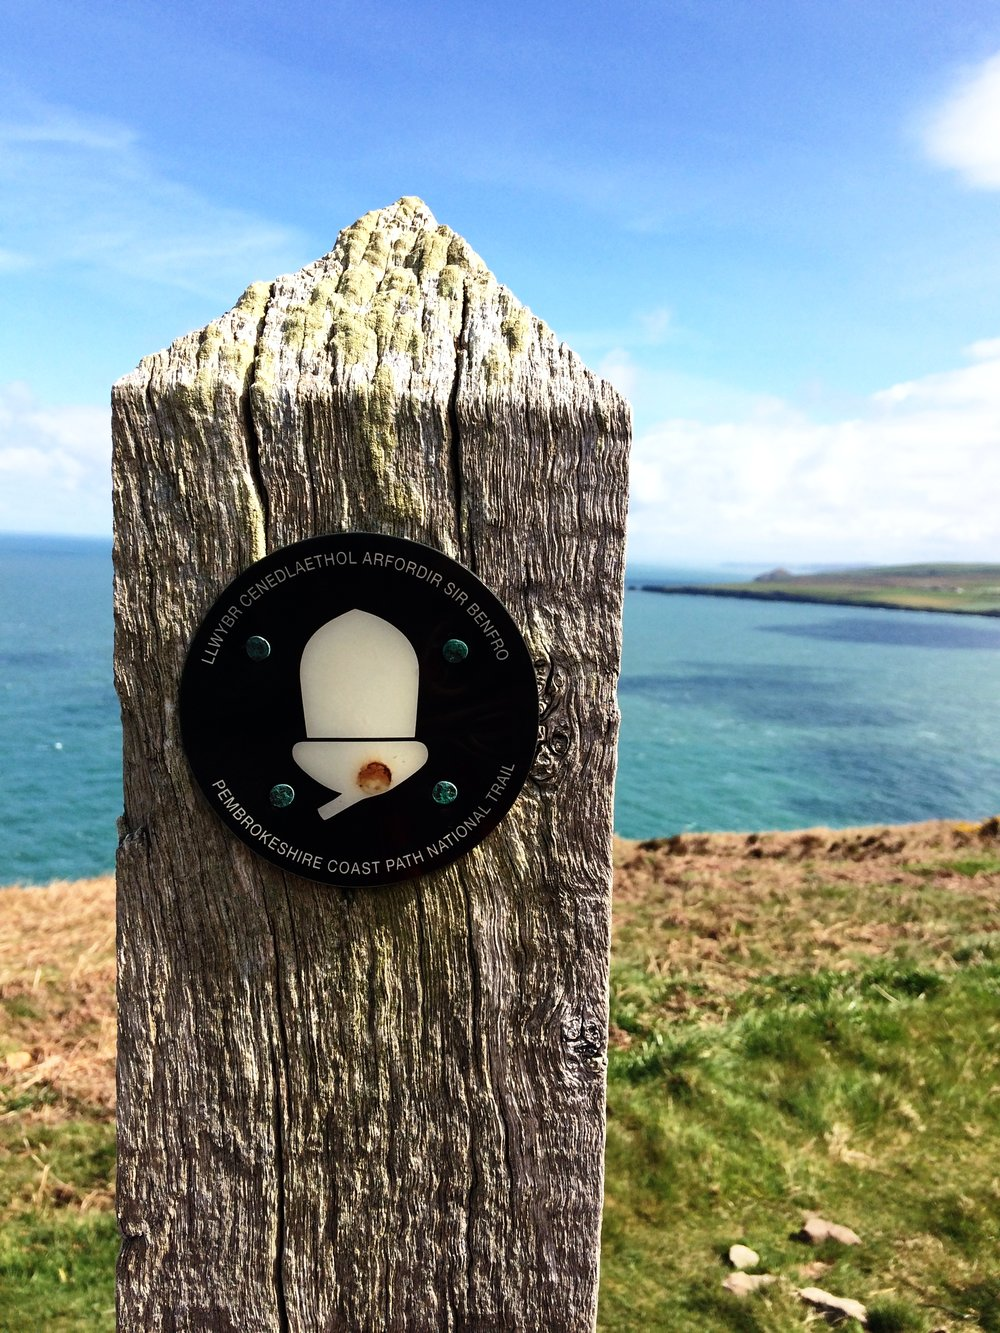 The Pembrokeshire Coast Path is marked by an acorn symbol